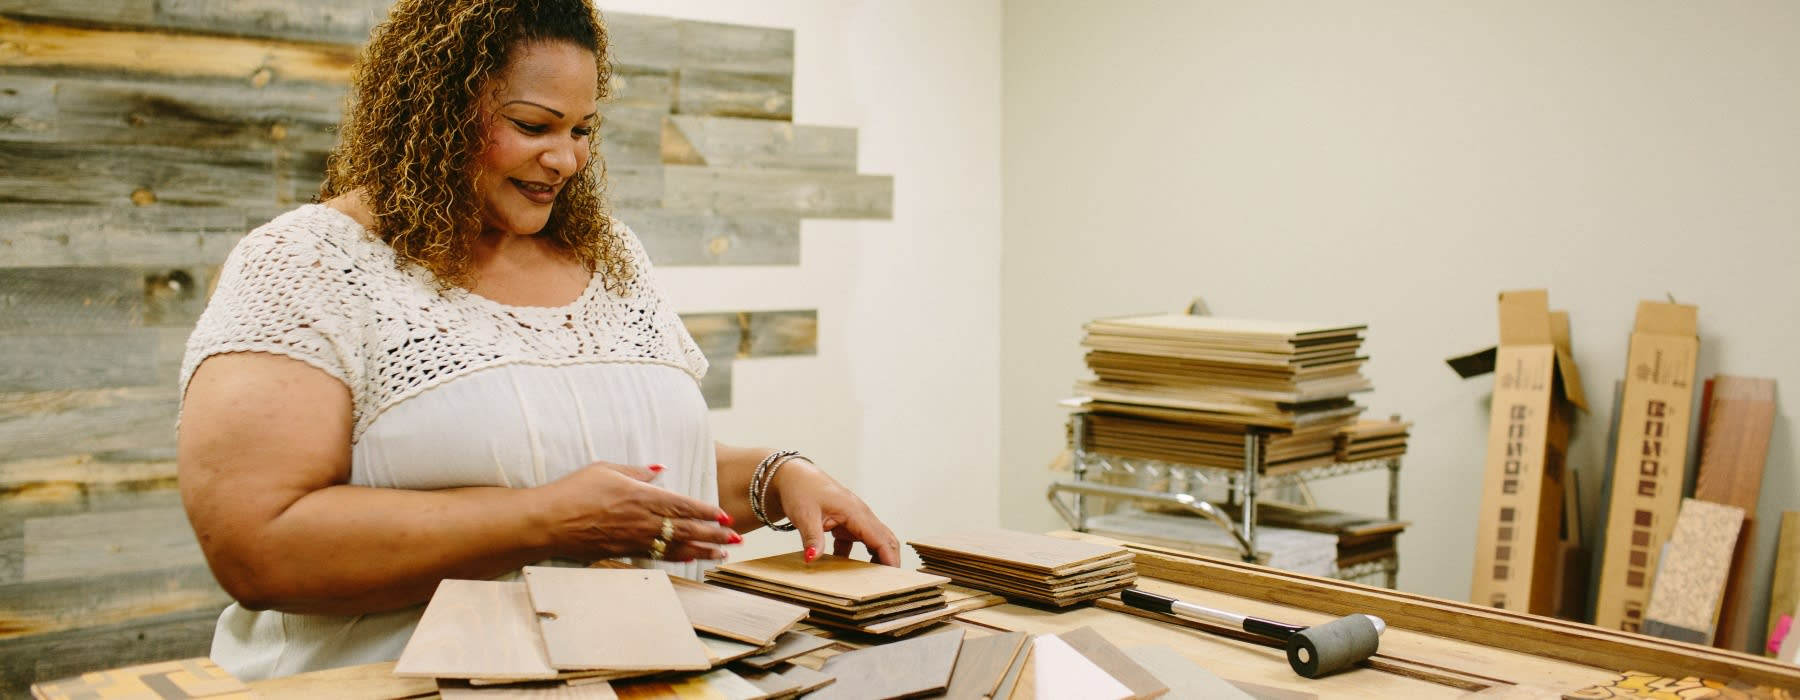 Stikwood worker looking at plankprint samples on a desk.